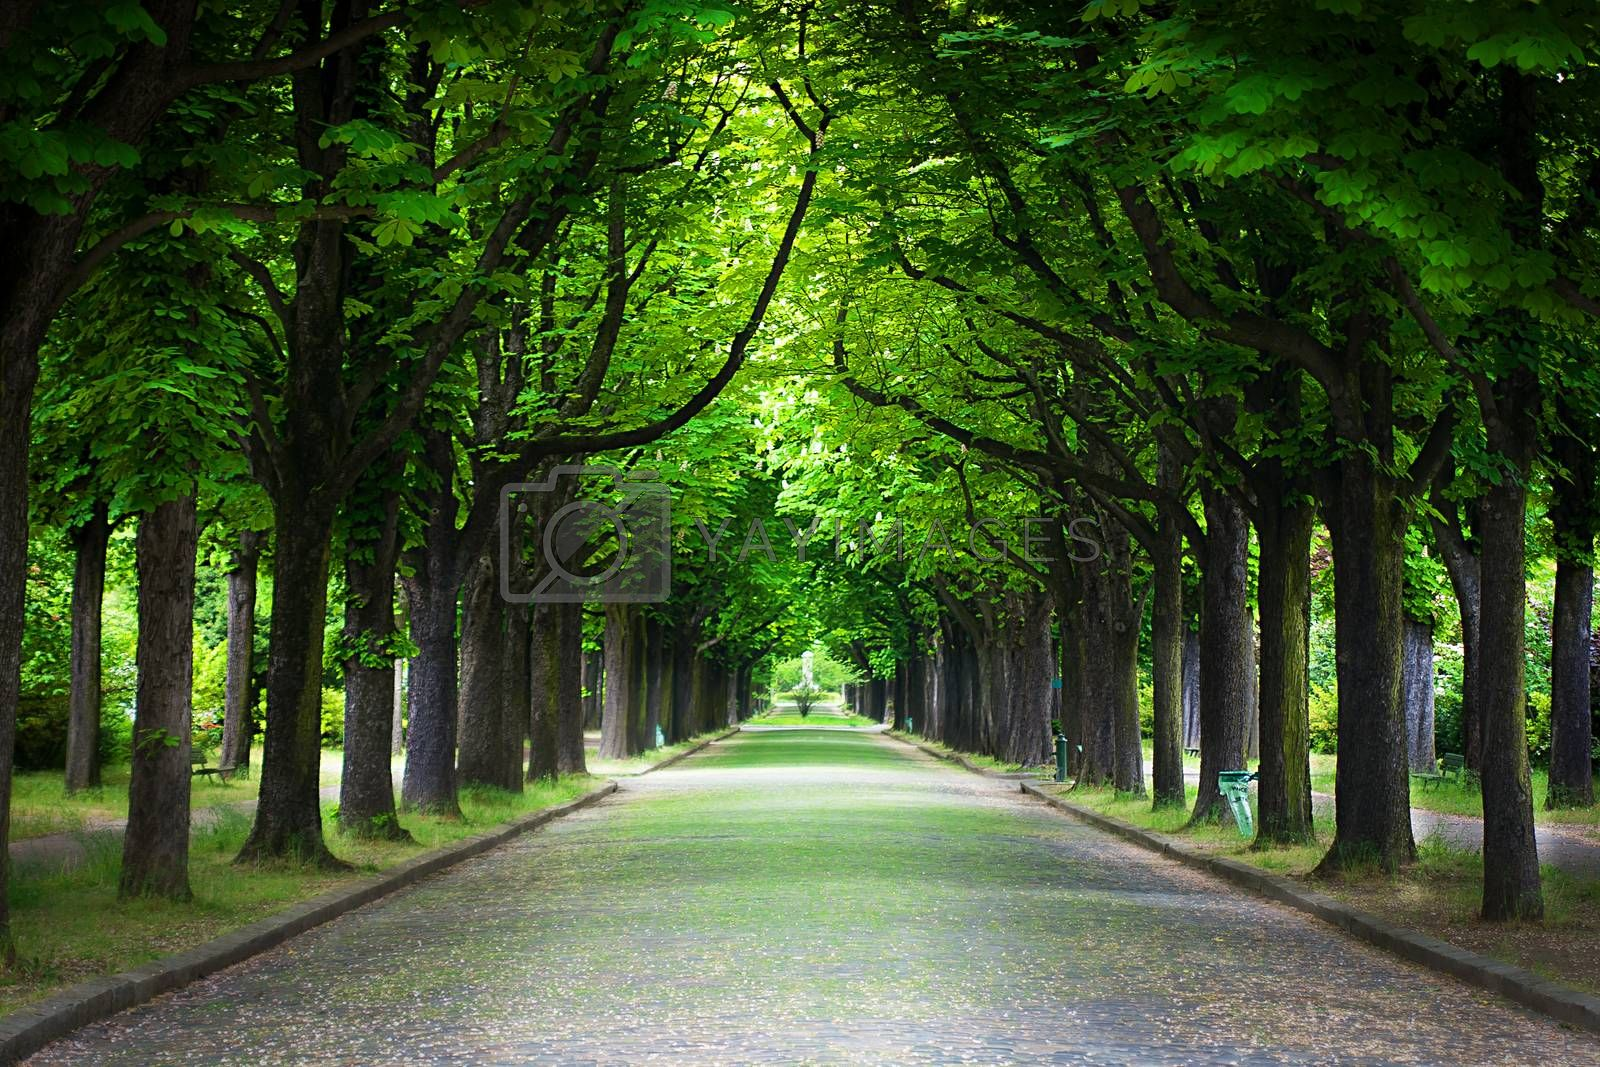 Royalty free image of Country road running through tree alley by sfinks